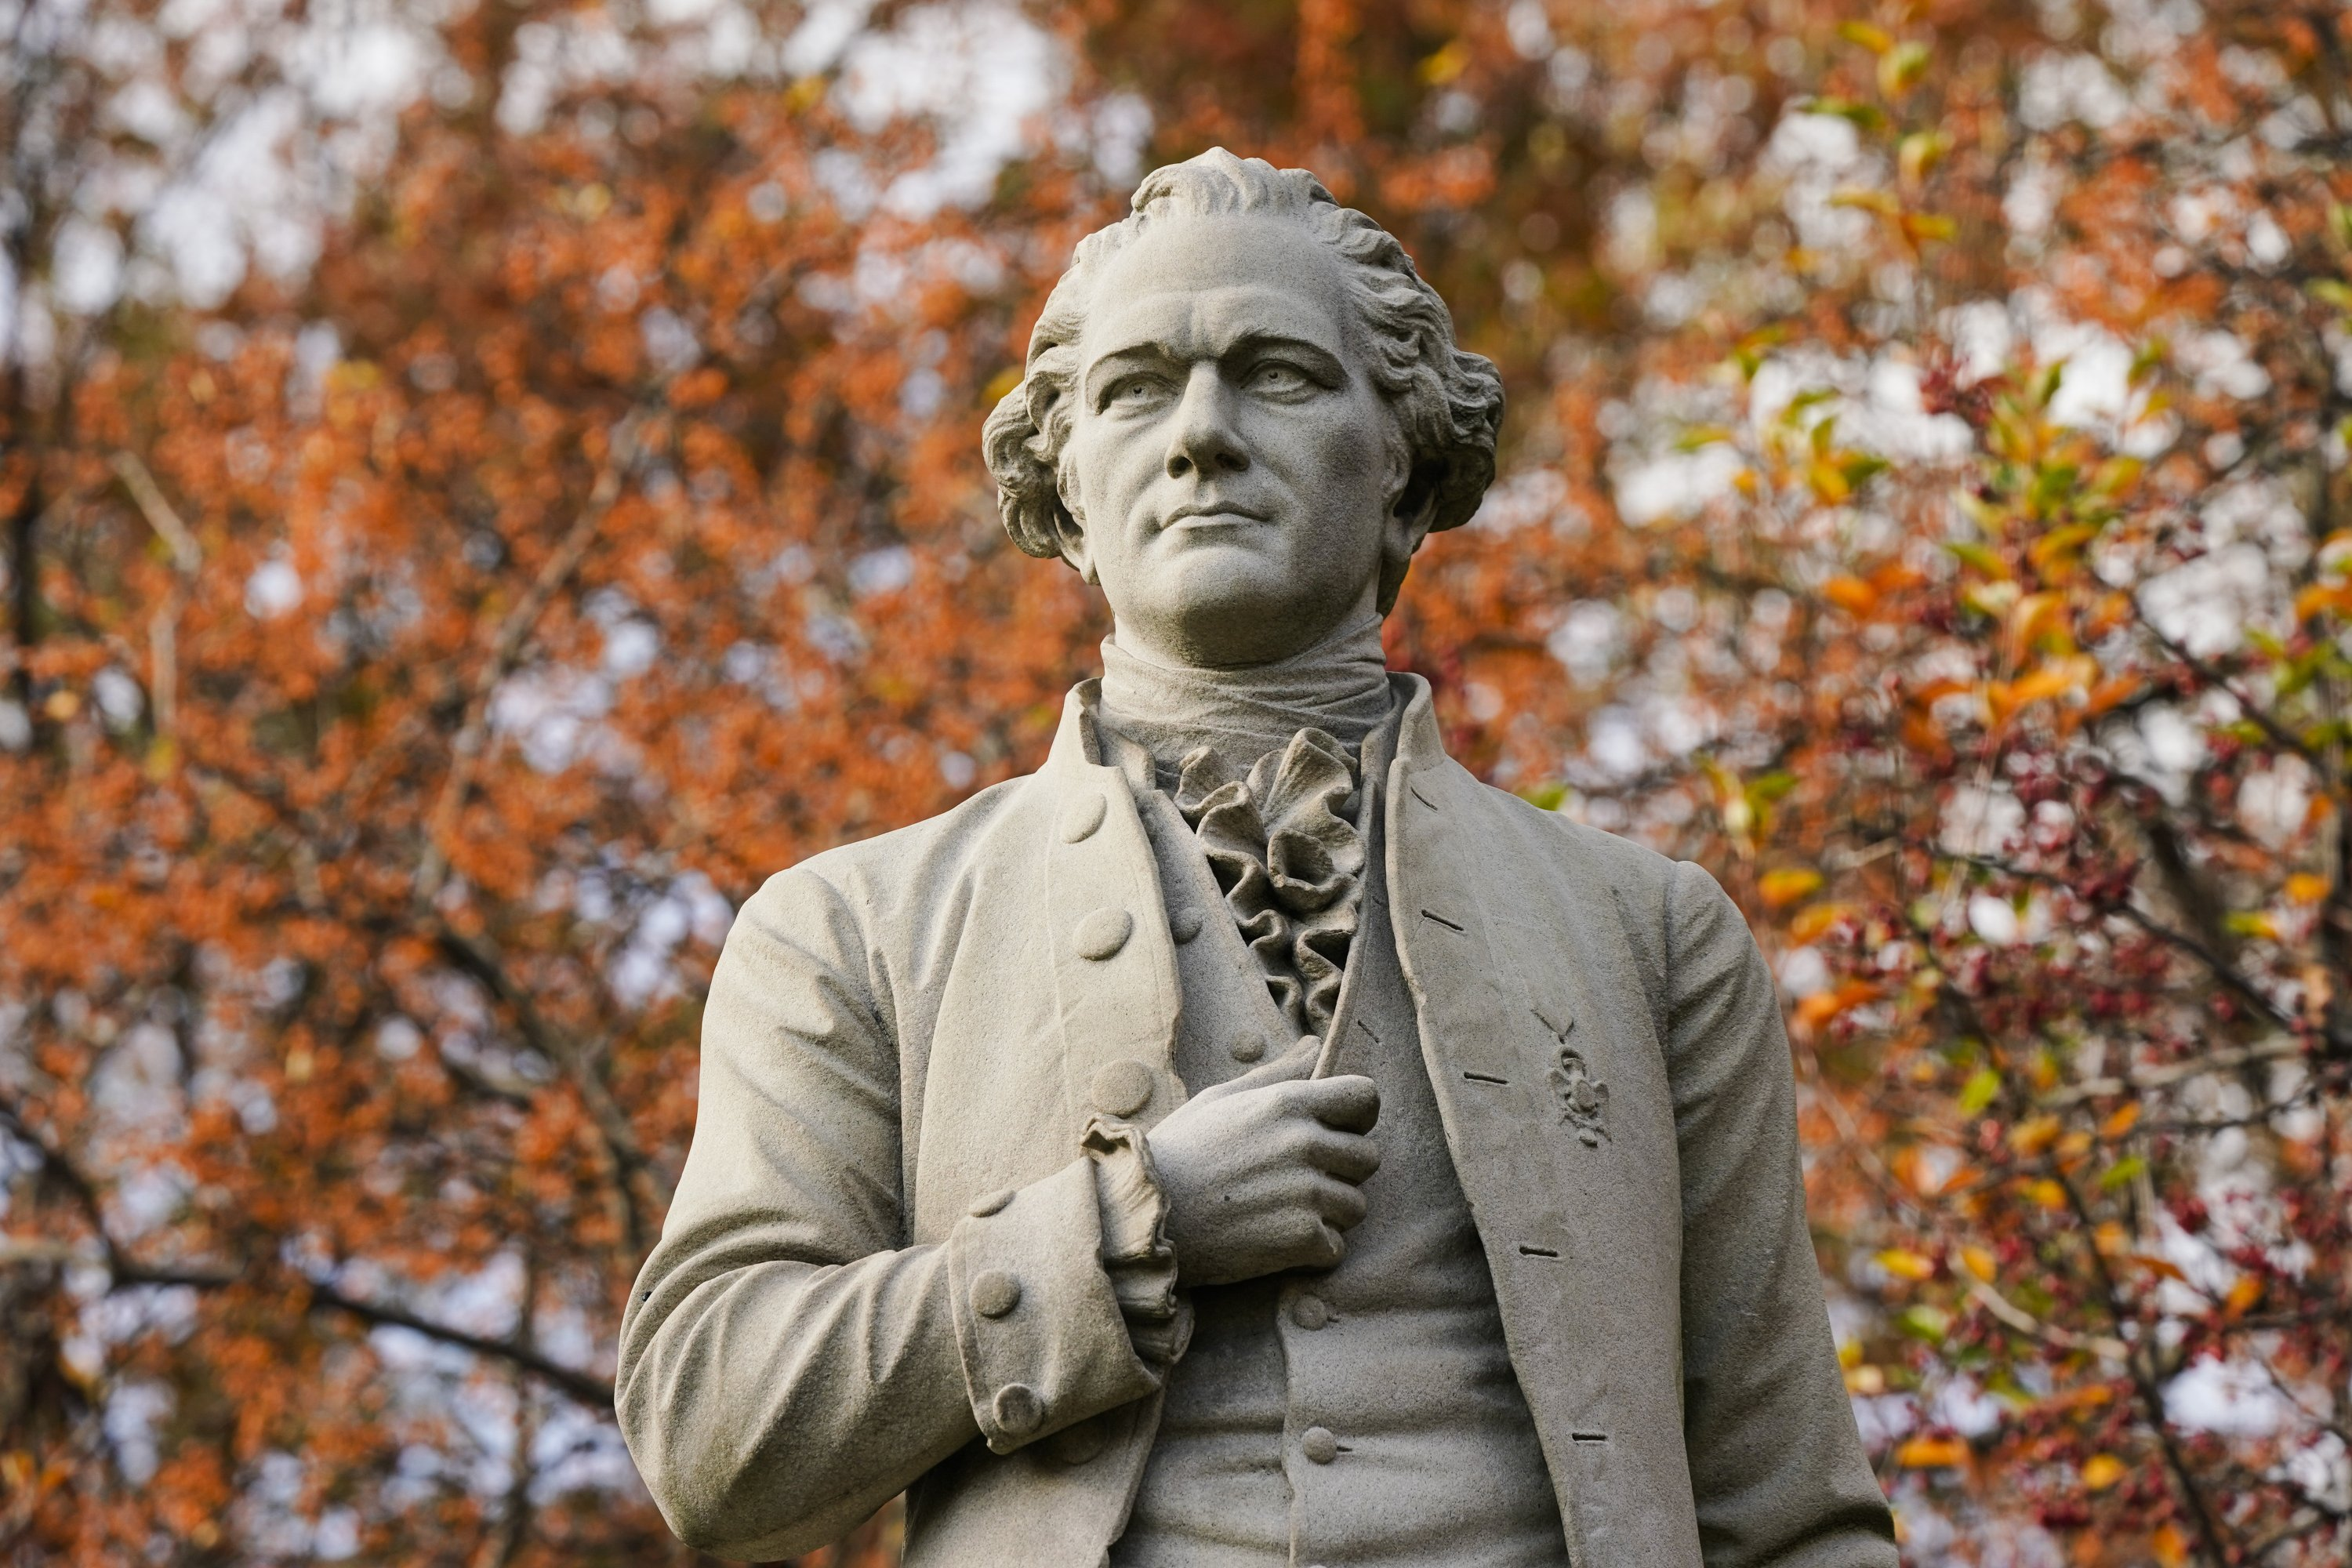 What Alexander Hamilton's deep connections to slavery reveal about the need for reparations today